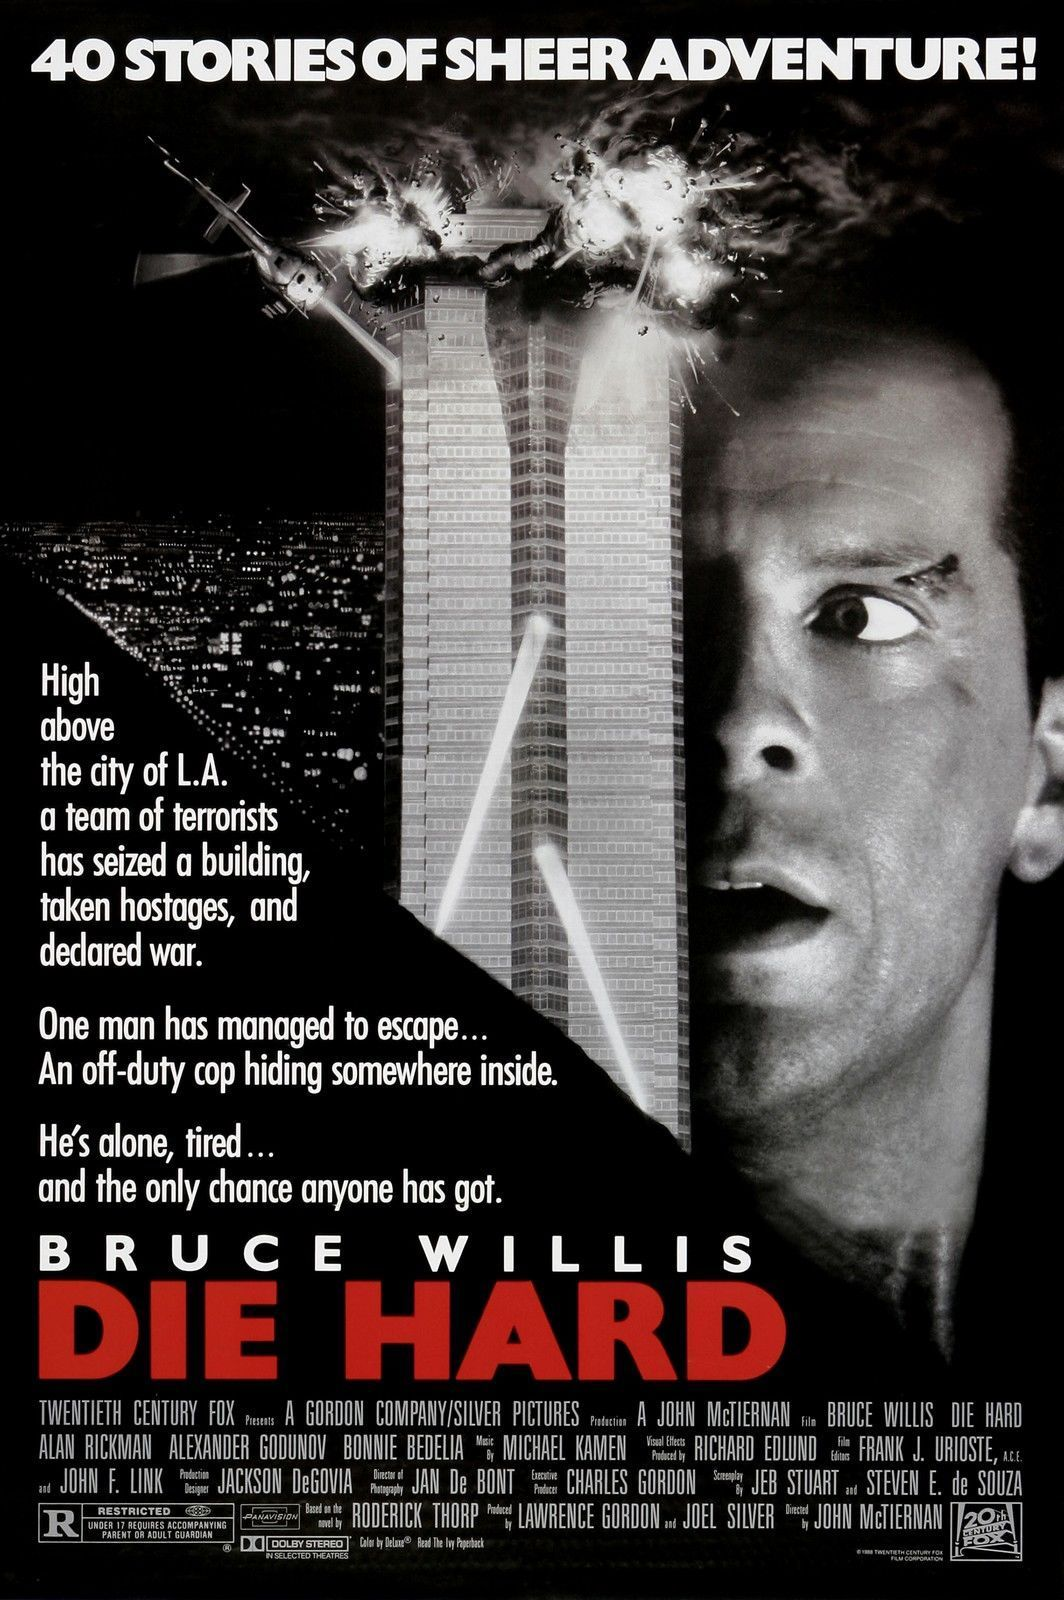 Click Imageto Buy It Now Die Hard Movie Poster Rare Bruce Willis 24x36 When Choosing One Of Our Amazing Poste Hard Movie Classic 80s Movies 80s Movie Posters